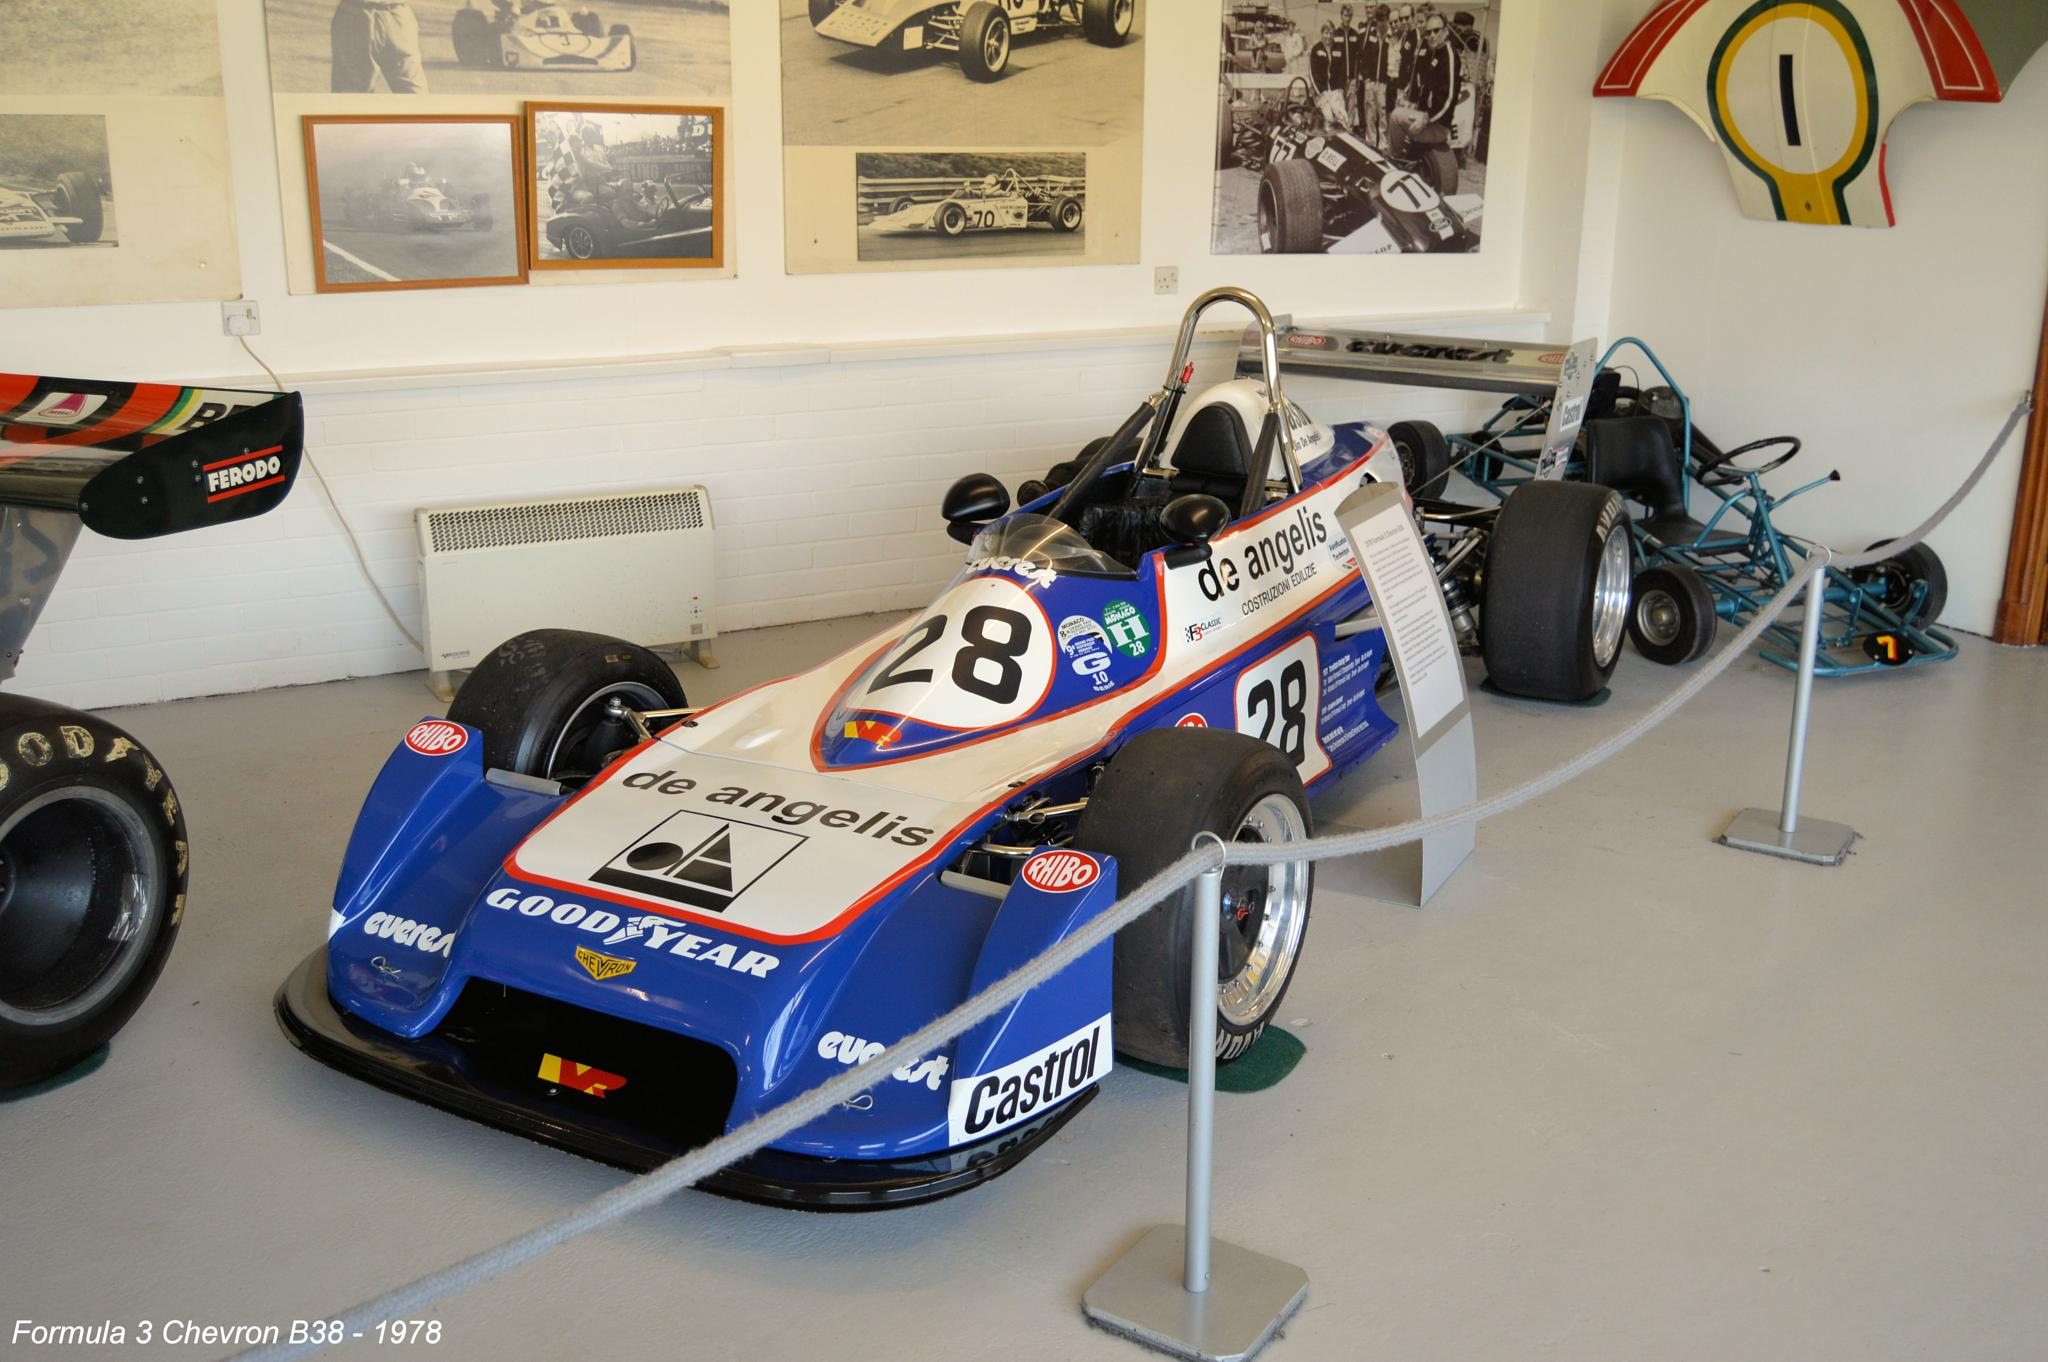 Formula 3 Chevron B38 - 1978 by Graham Wood Photo Collection